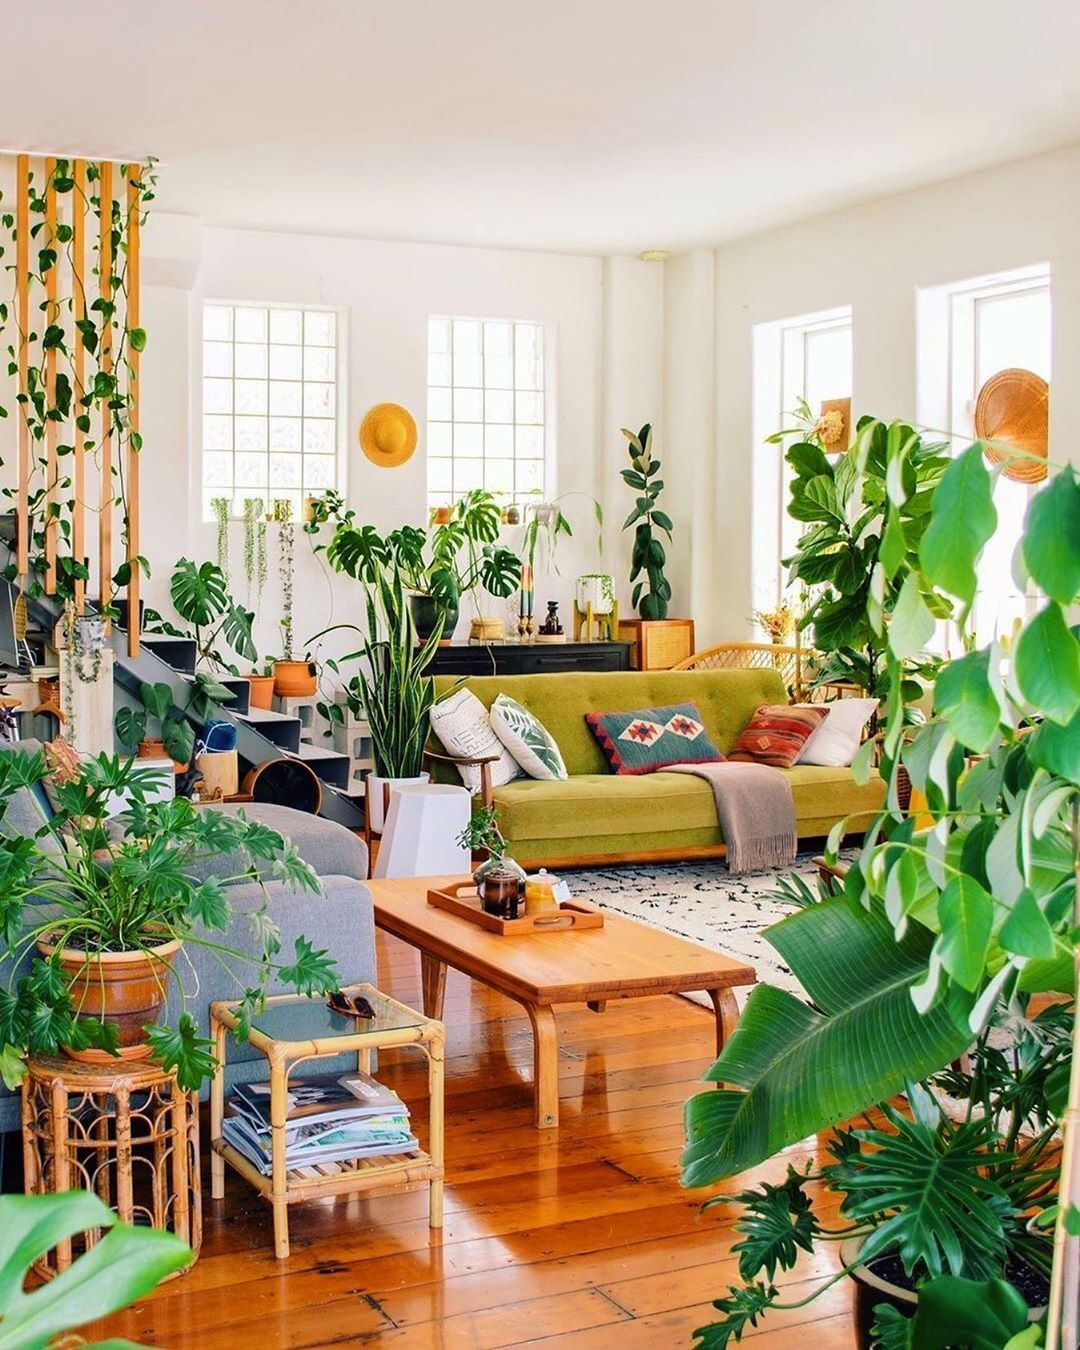 Ohh Deer On Instagram This Is Just Our Dream House Anyone Else Image From Mrcigar Via Ho Jungle Living Room Living Room Decor Jungle Living Room Ideas Jungle living room ideas